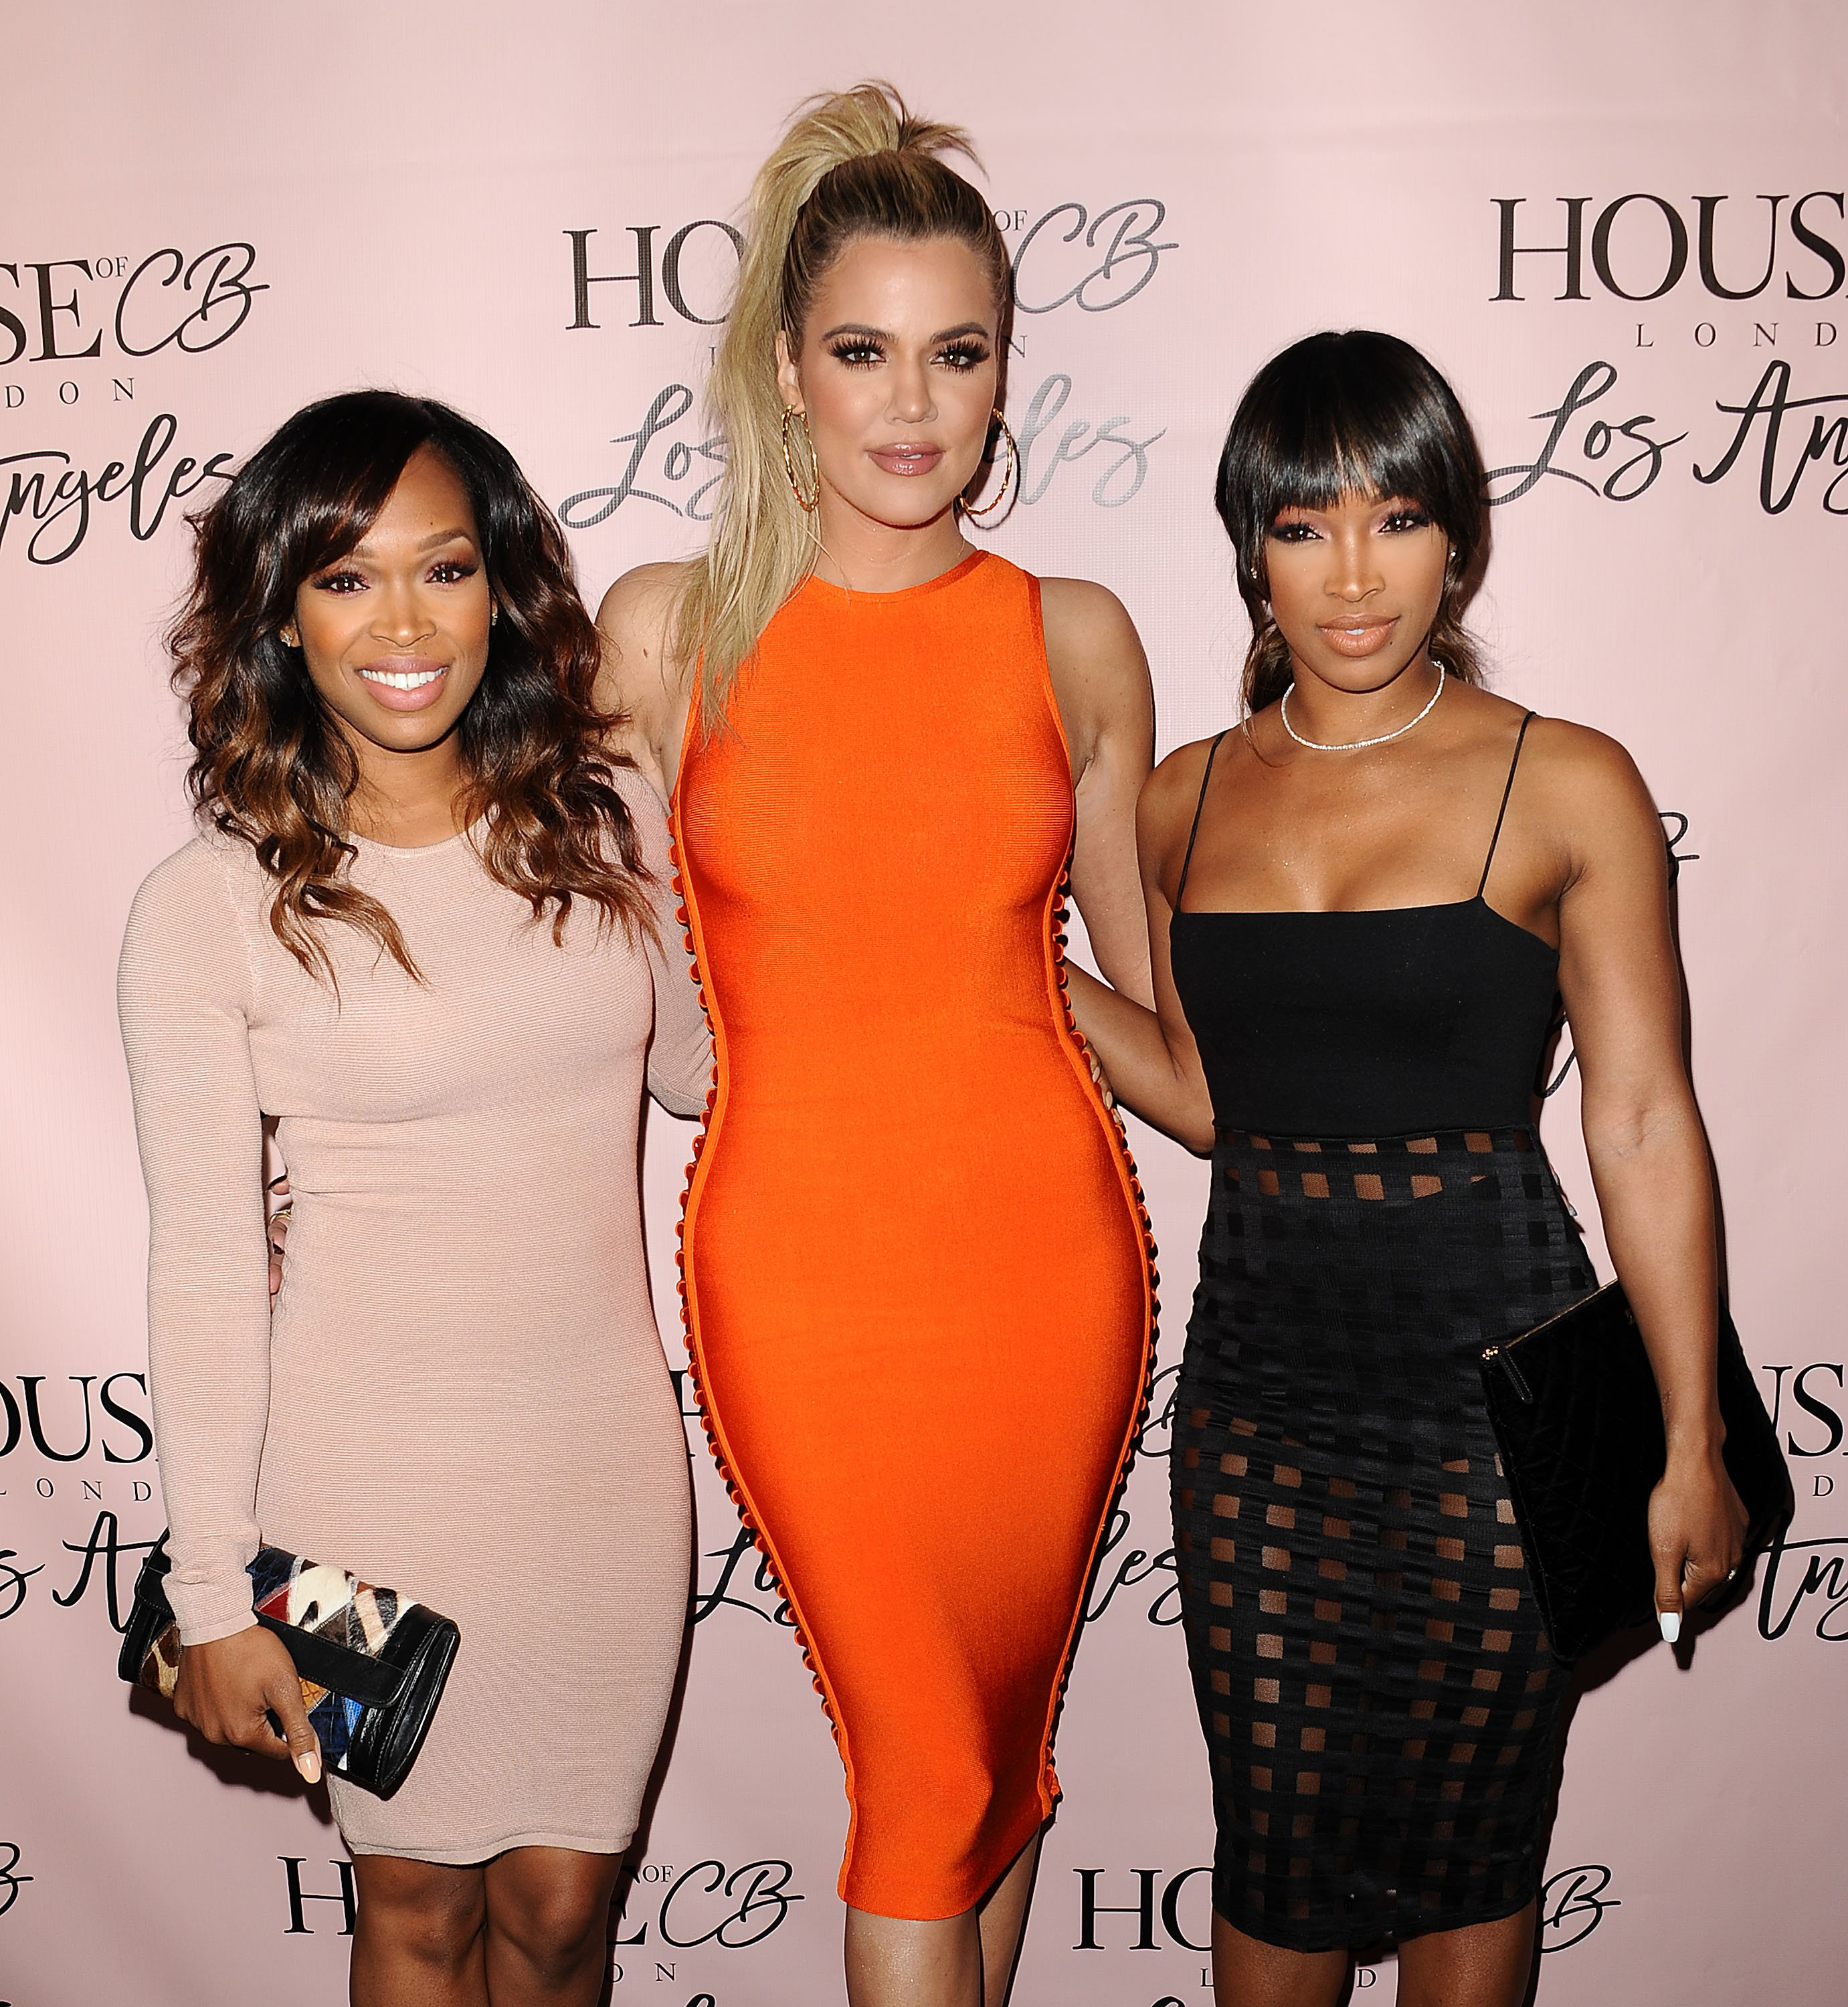 Khadijah Haqq, Khloé Kardashian and Malika Haqq at the House of CB flagship store launch on June 14, 2016 in West Hollywood, California. | Source: Getty Images